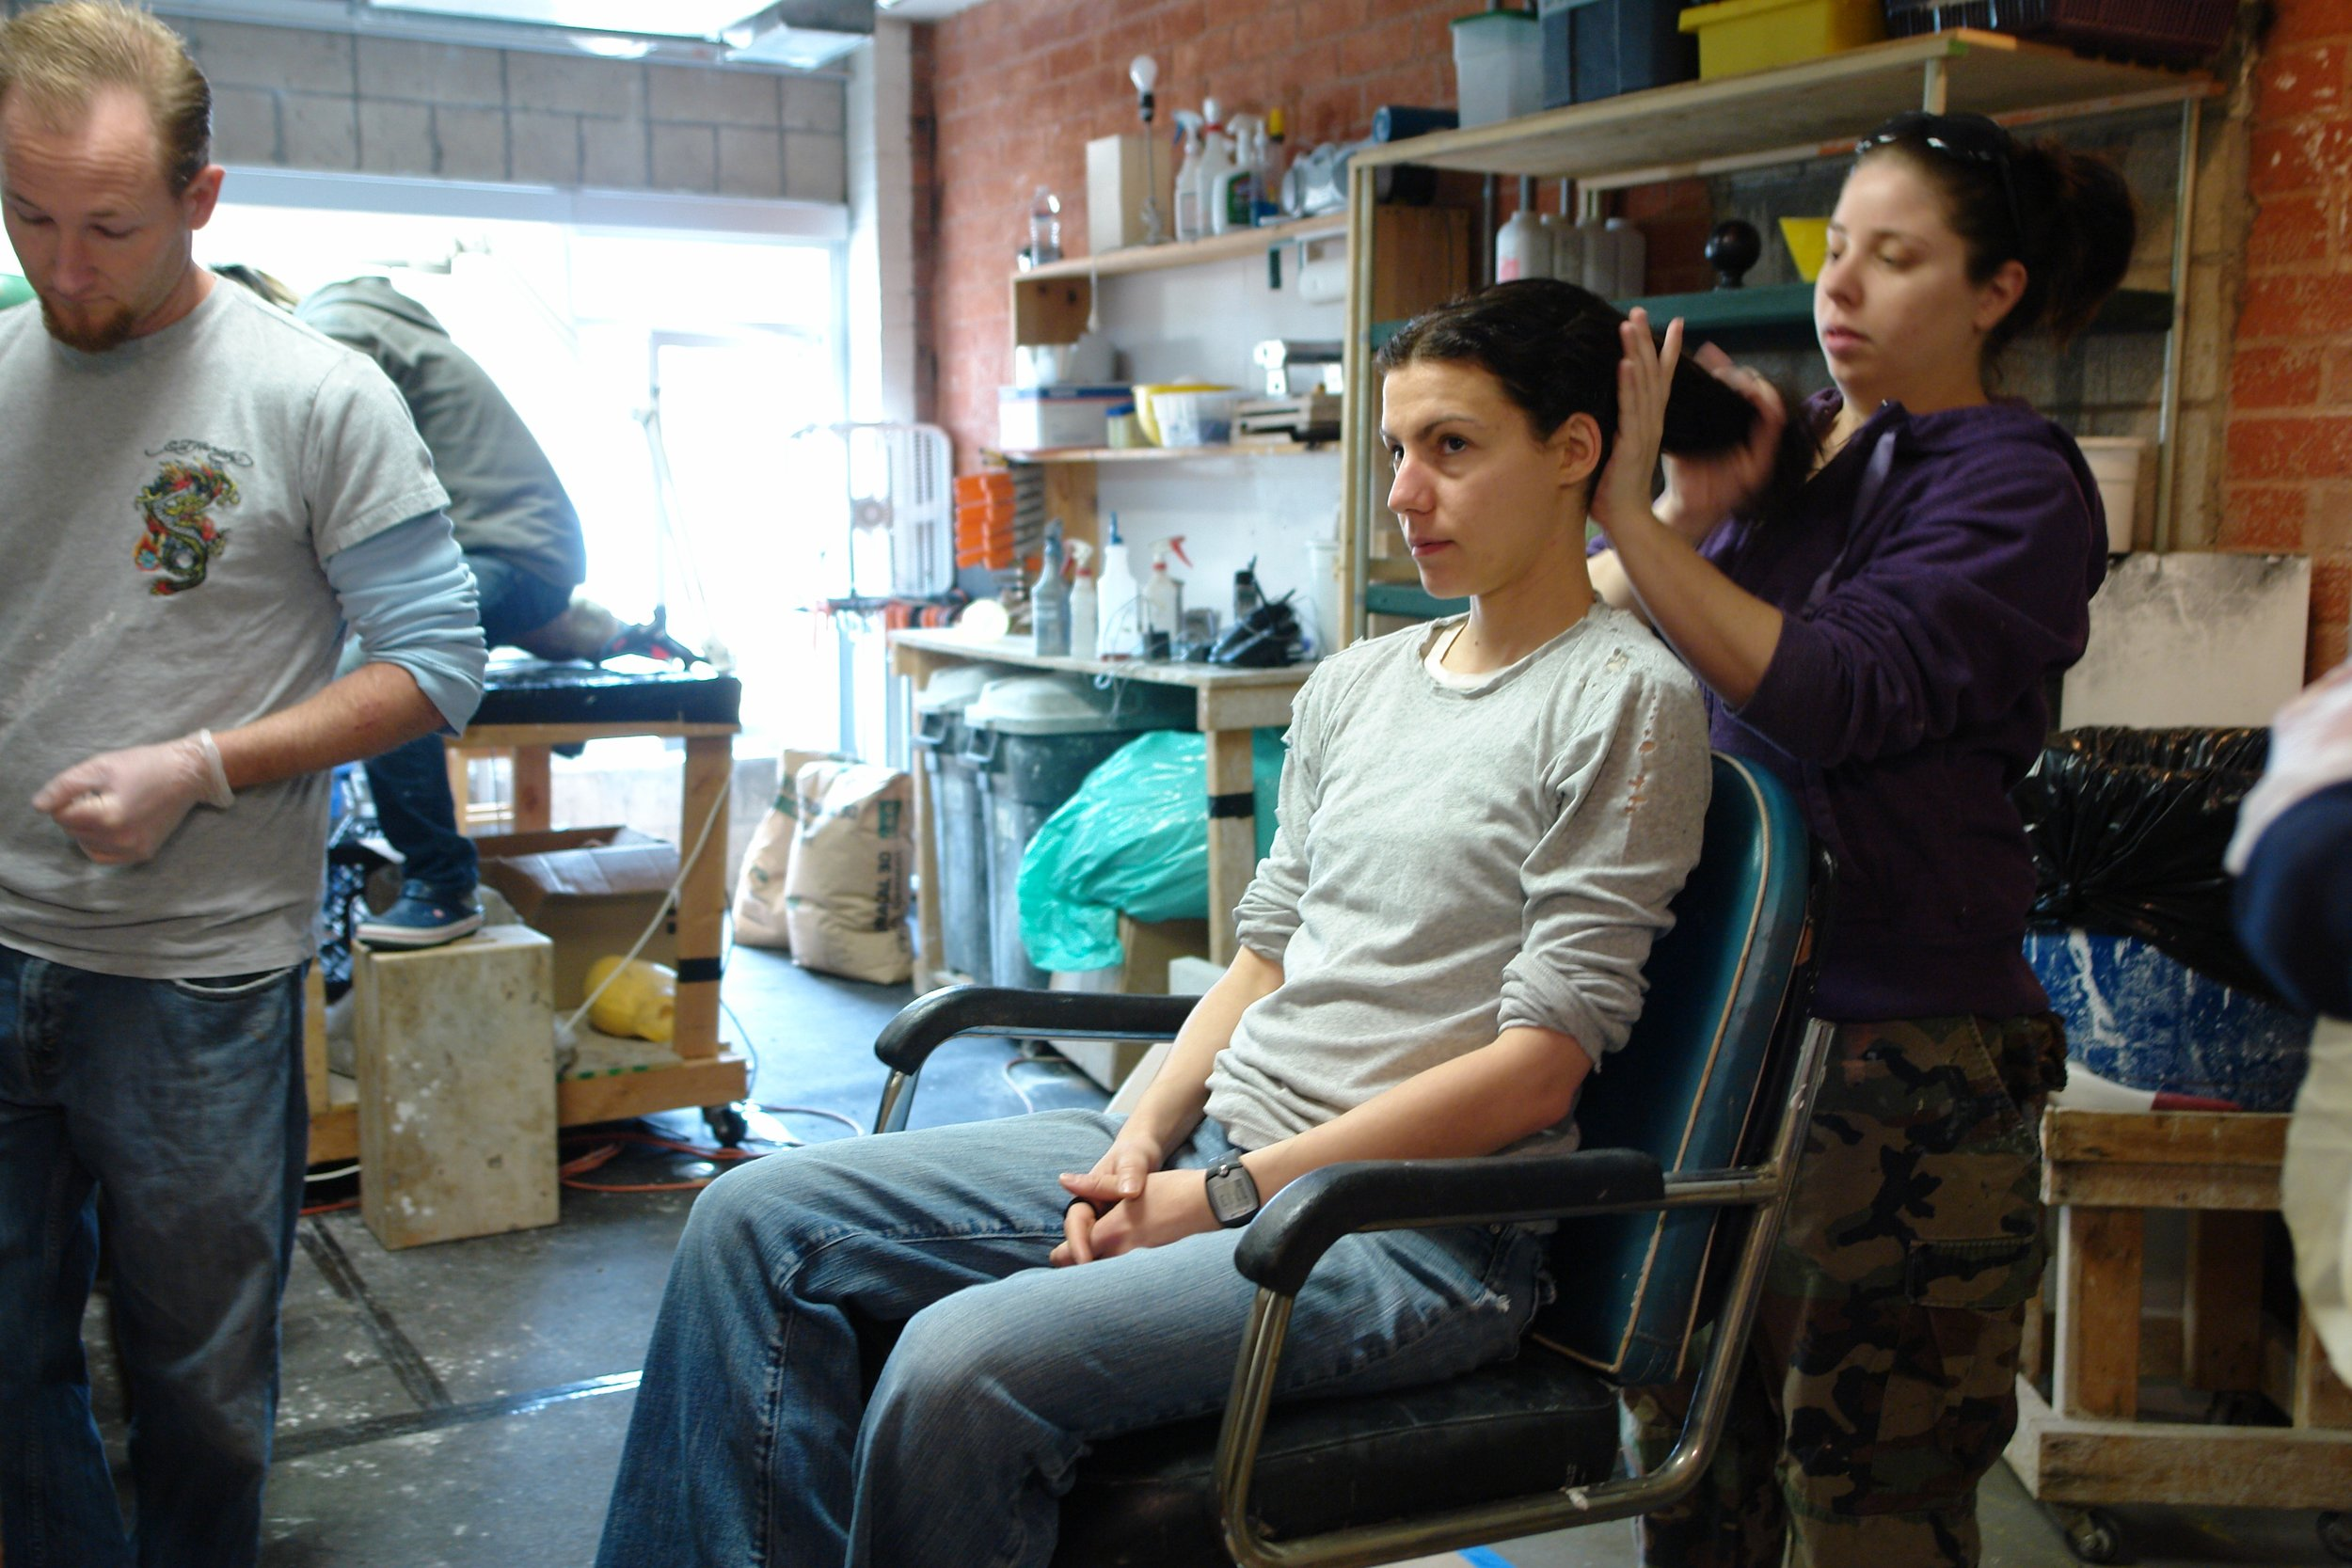 Yusuke Tateishi works in the background at Barney Burman's B2FX shop as fellow make-up effects artists Travis Weikel and Lee Komet prep actor Margarita Maliagros for a life cast as part of her special character make-up as Pinhead M in Lascaux Entertainment's 2011 production of  The Elephant Man , directed by John Drouillard.  Photo by Natalie Drouillard.